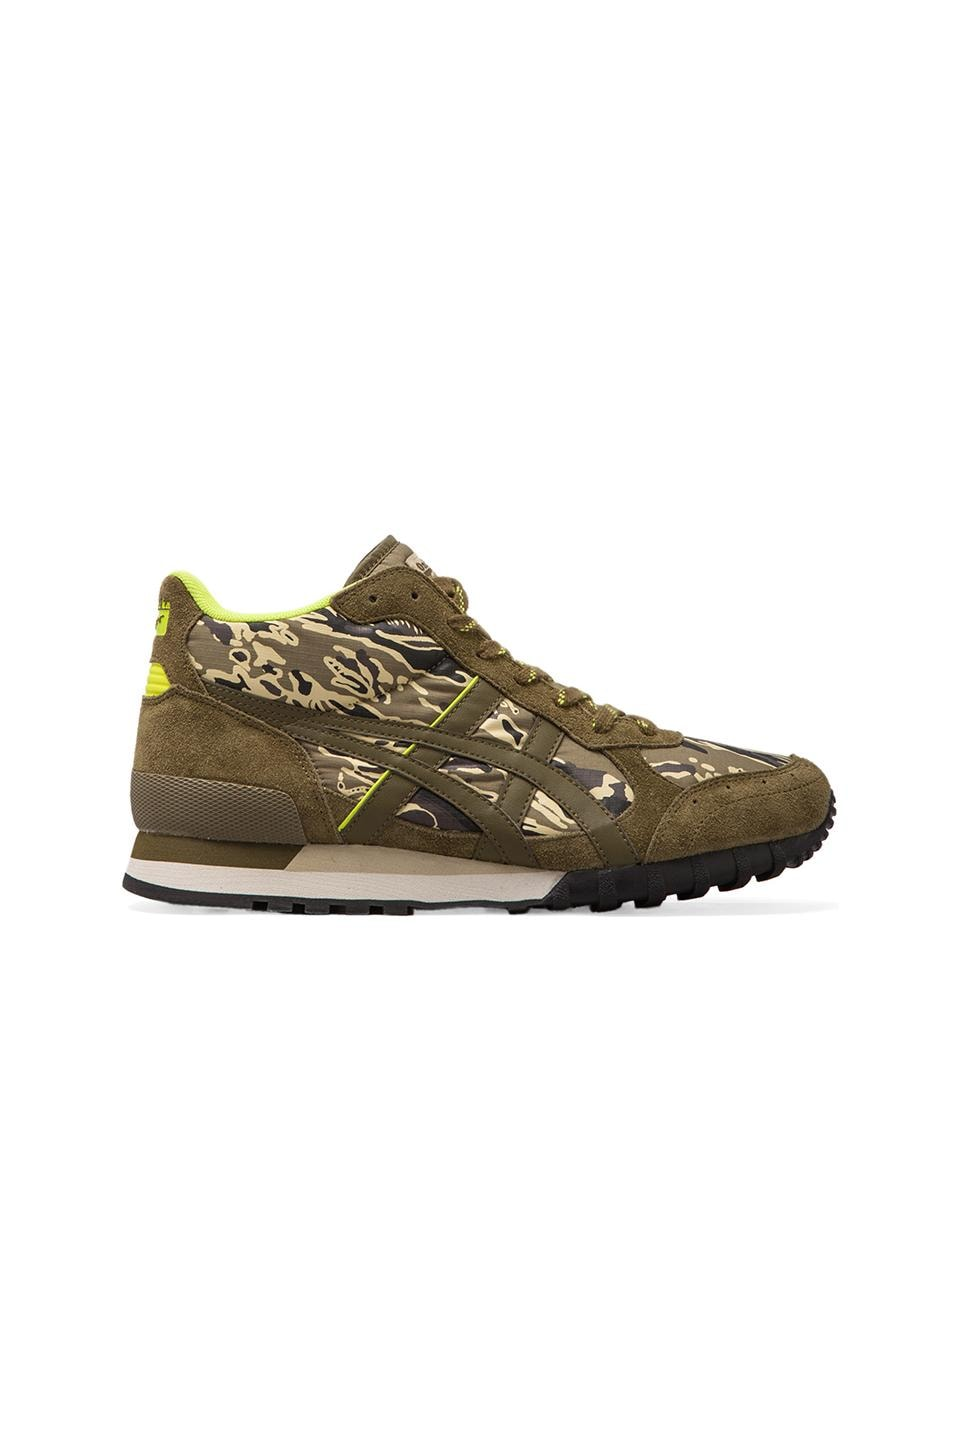 Onitsuka Tiger Colorado Eighty-Five MT in Tiger Camo/Olive